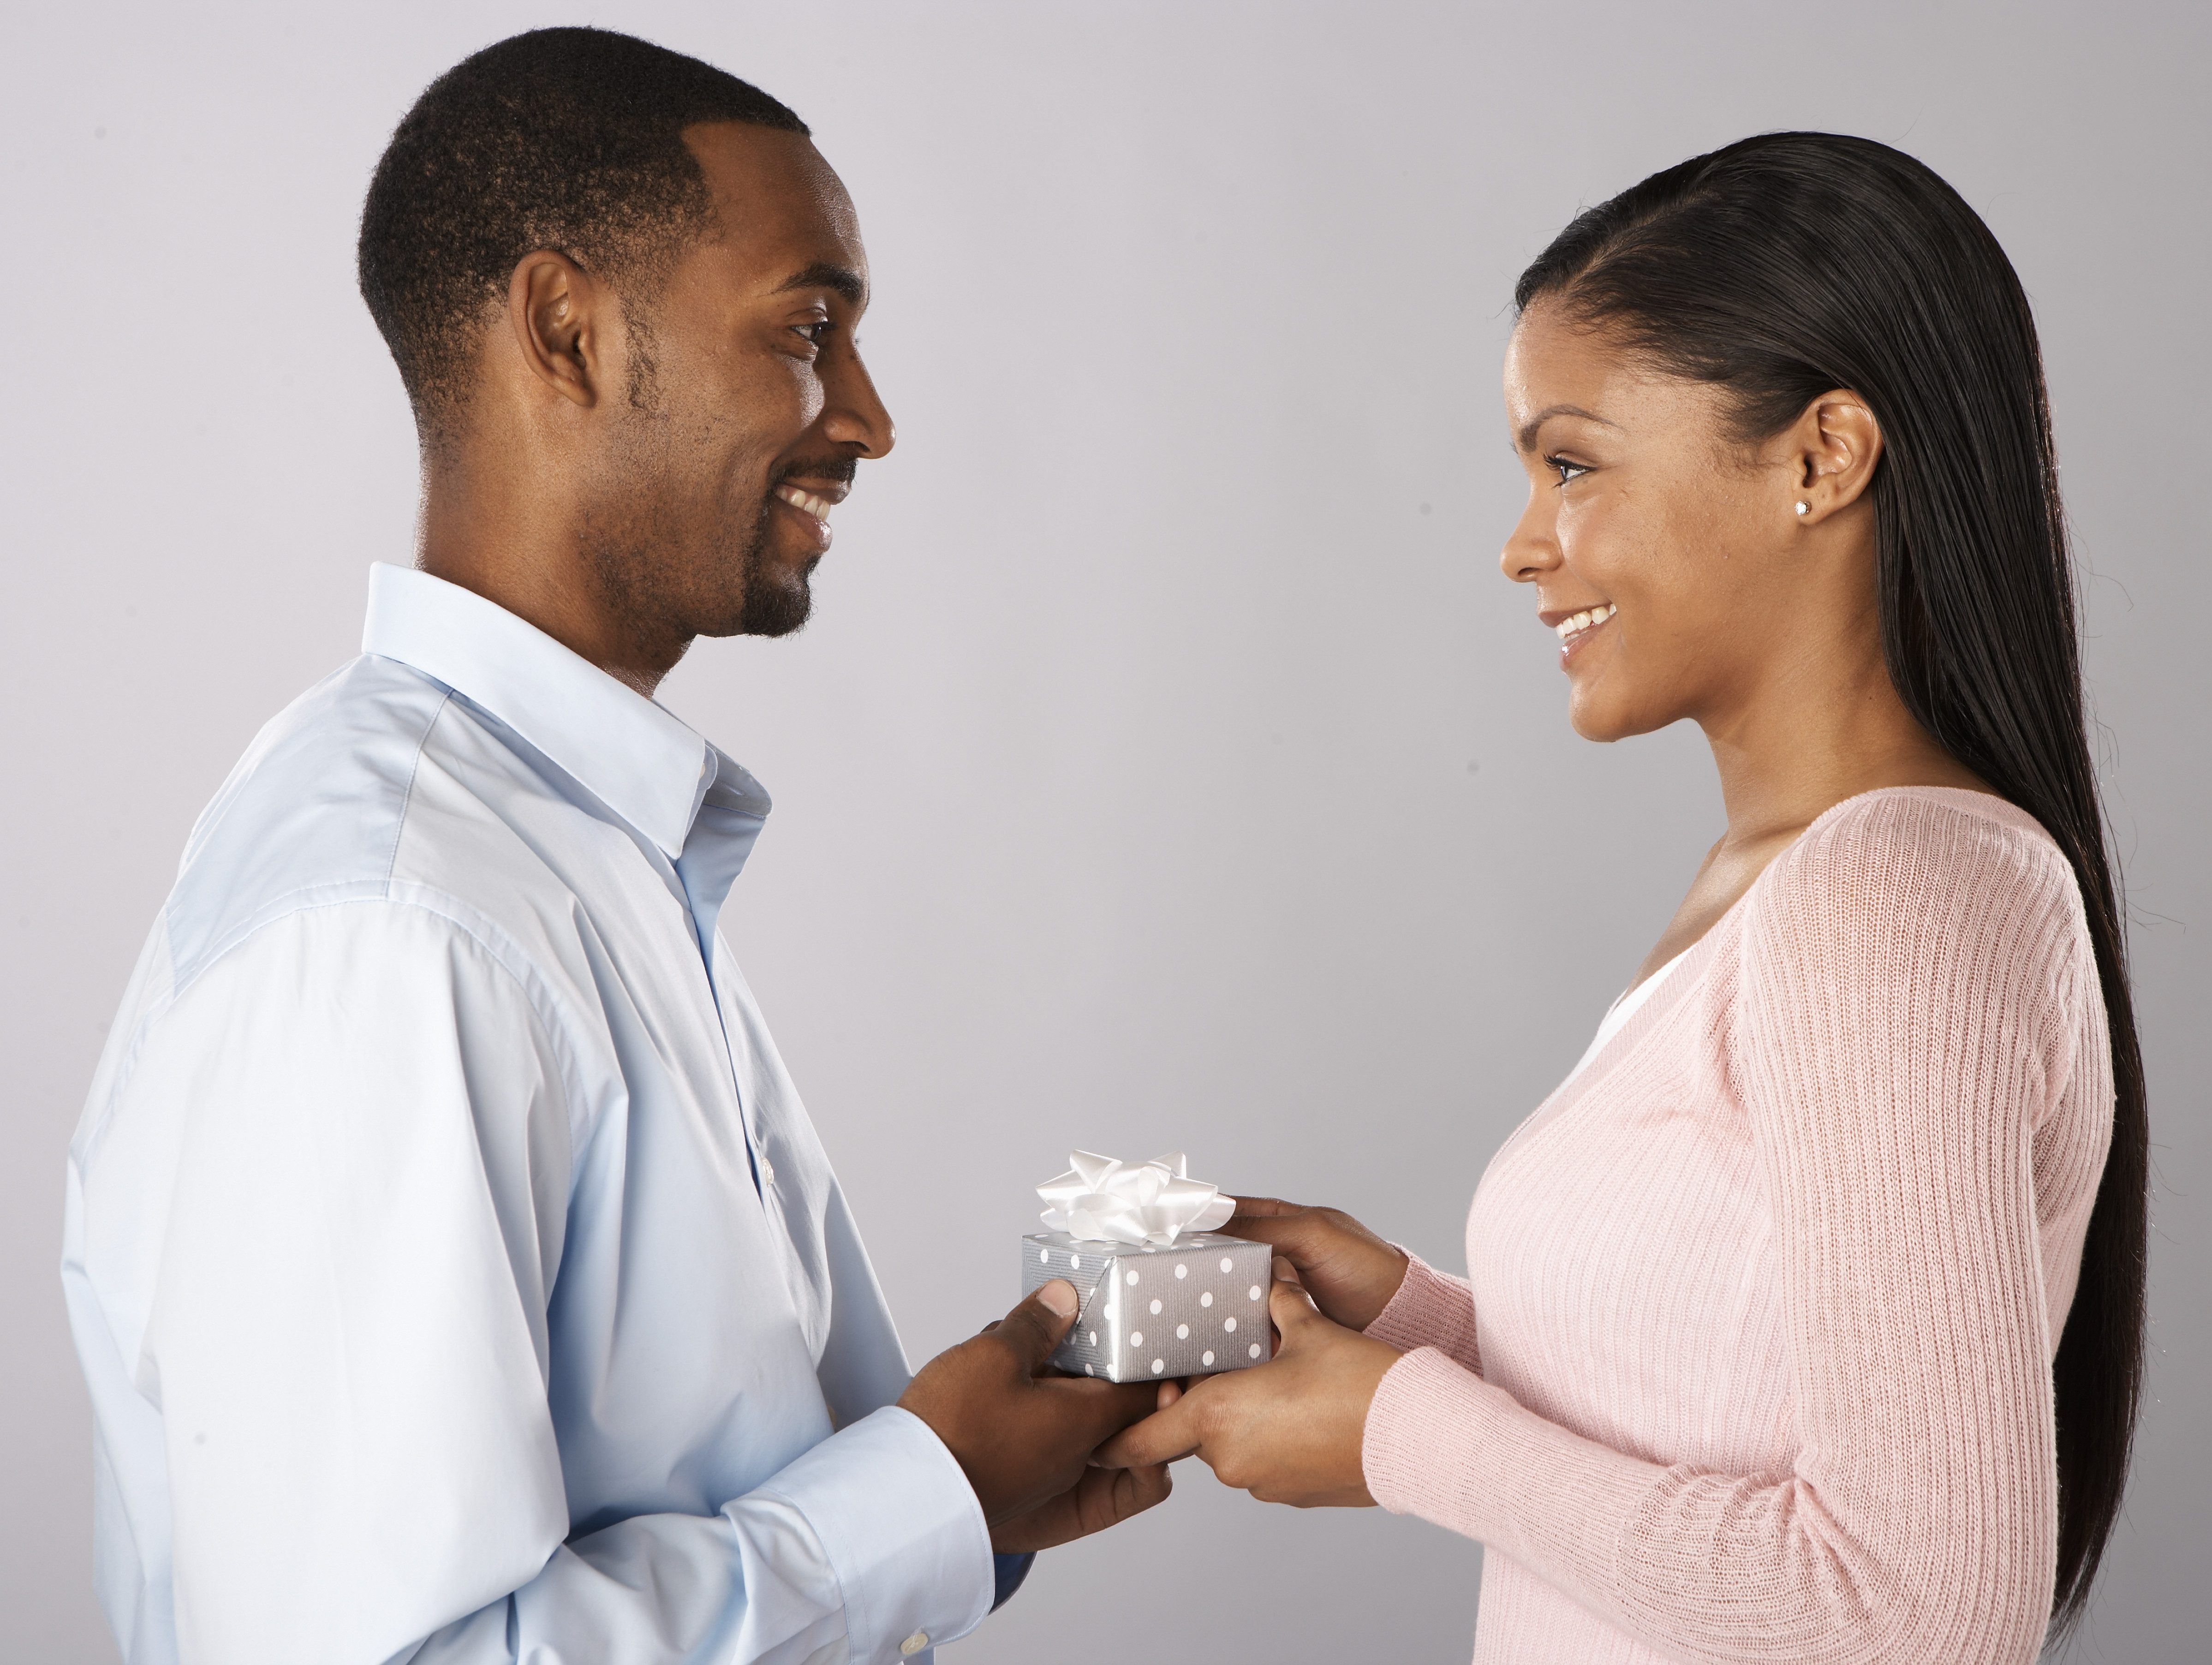 A man giving a woman a gift